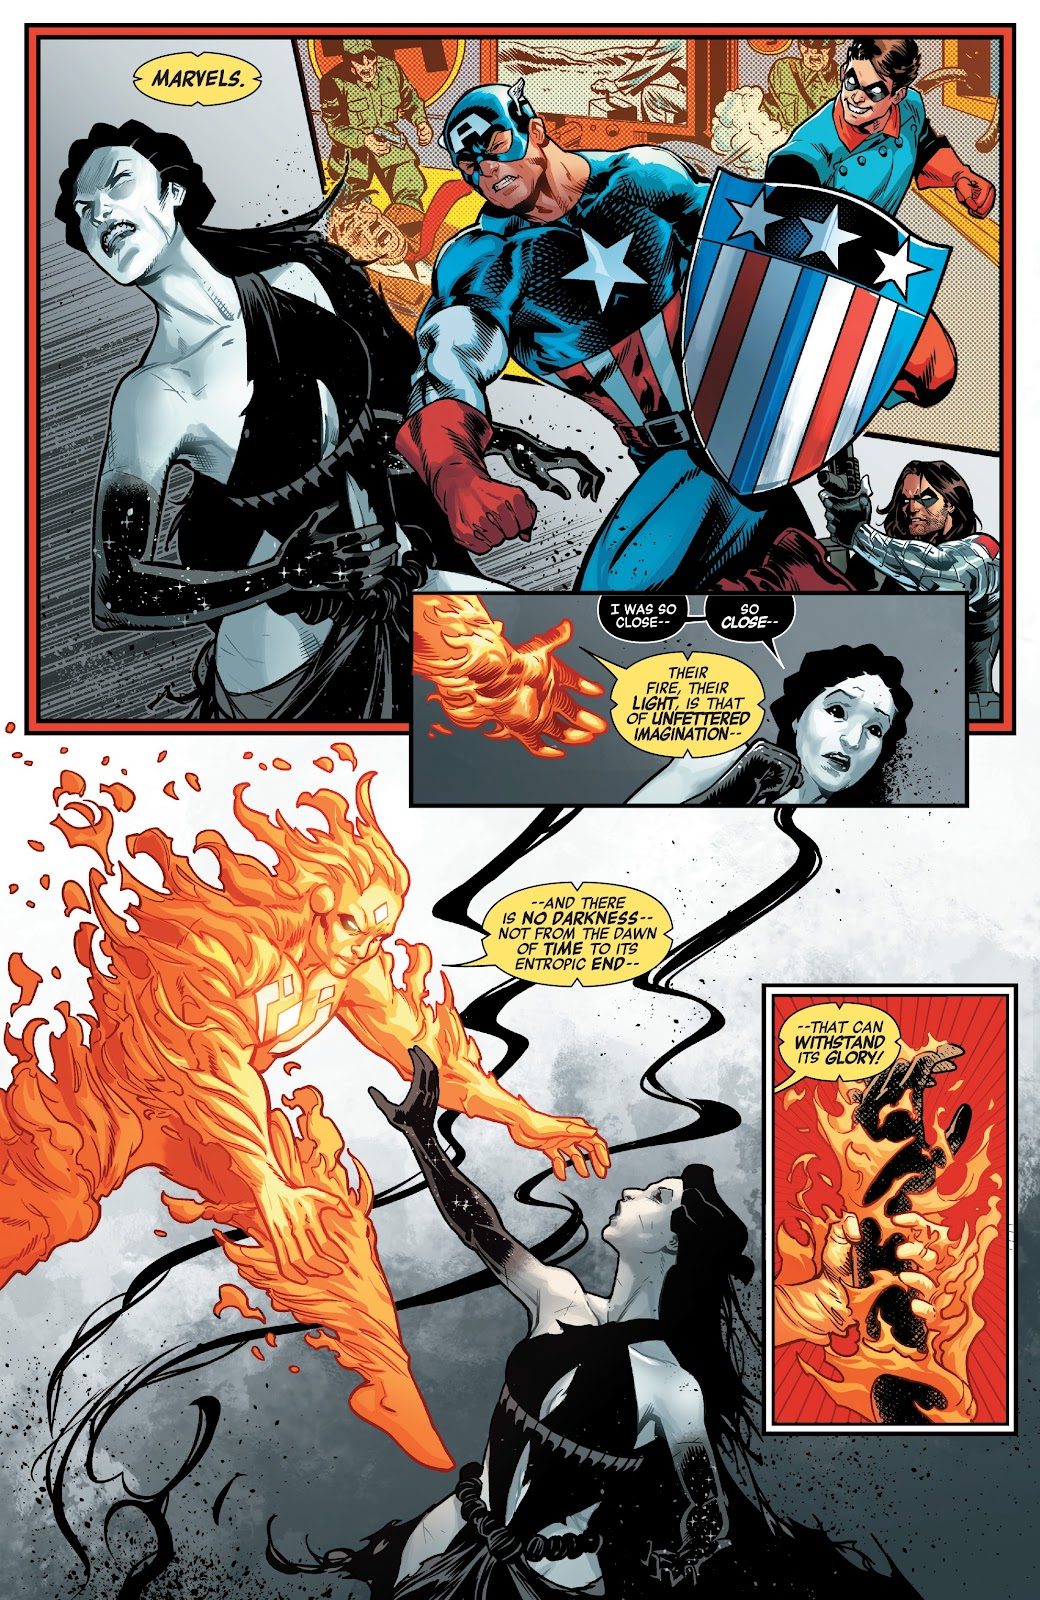 Read online Avengers No Road Home comic -  Issue #10 - 16